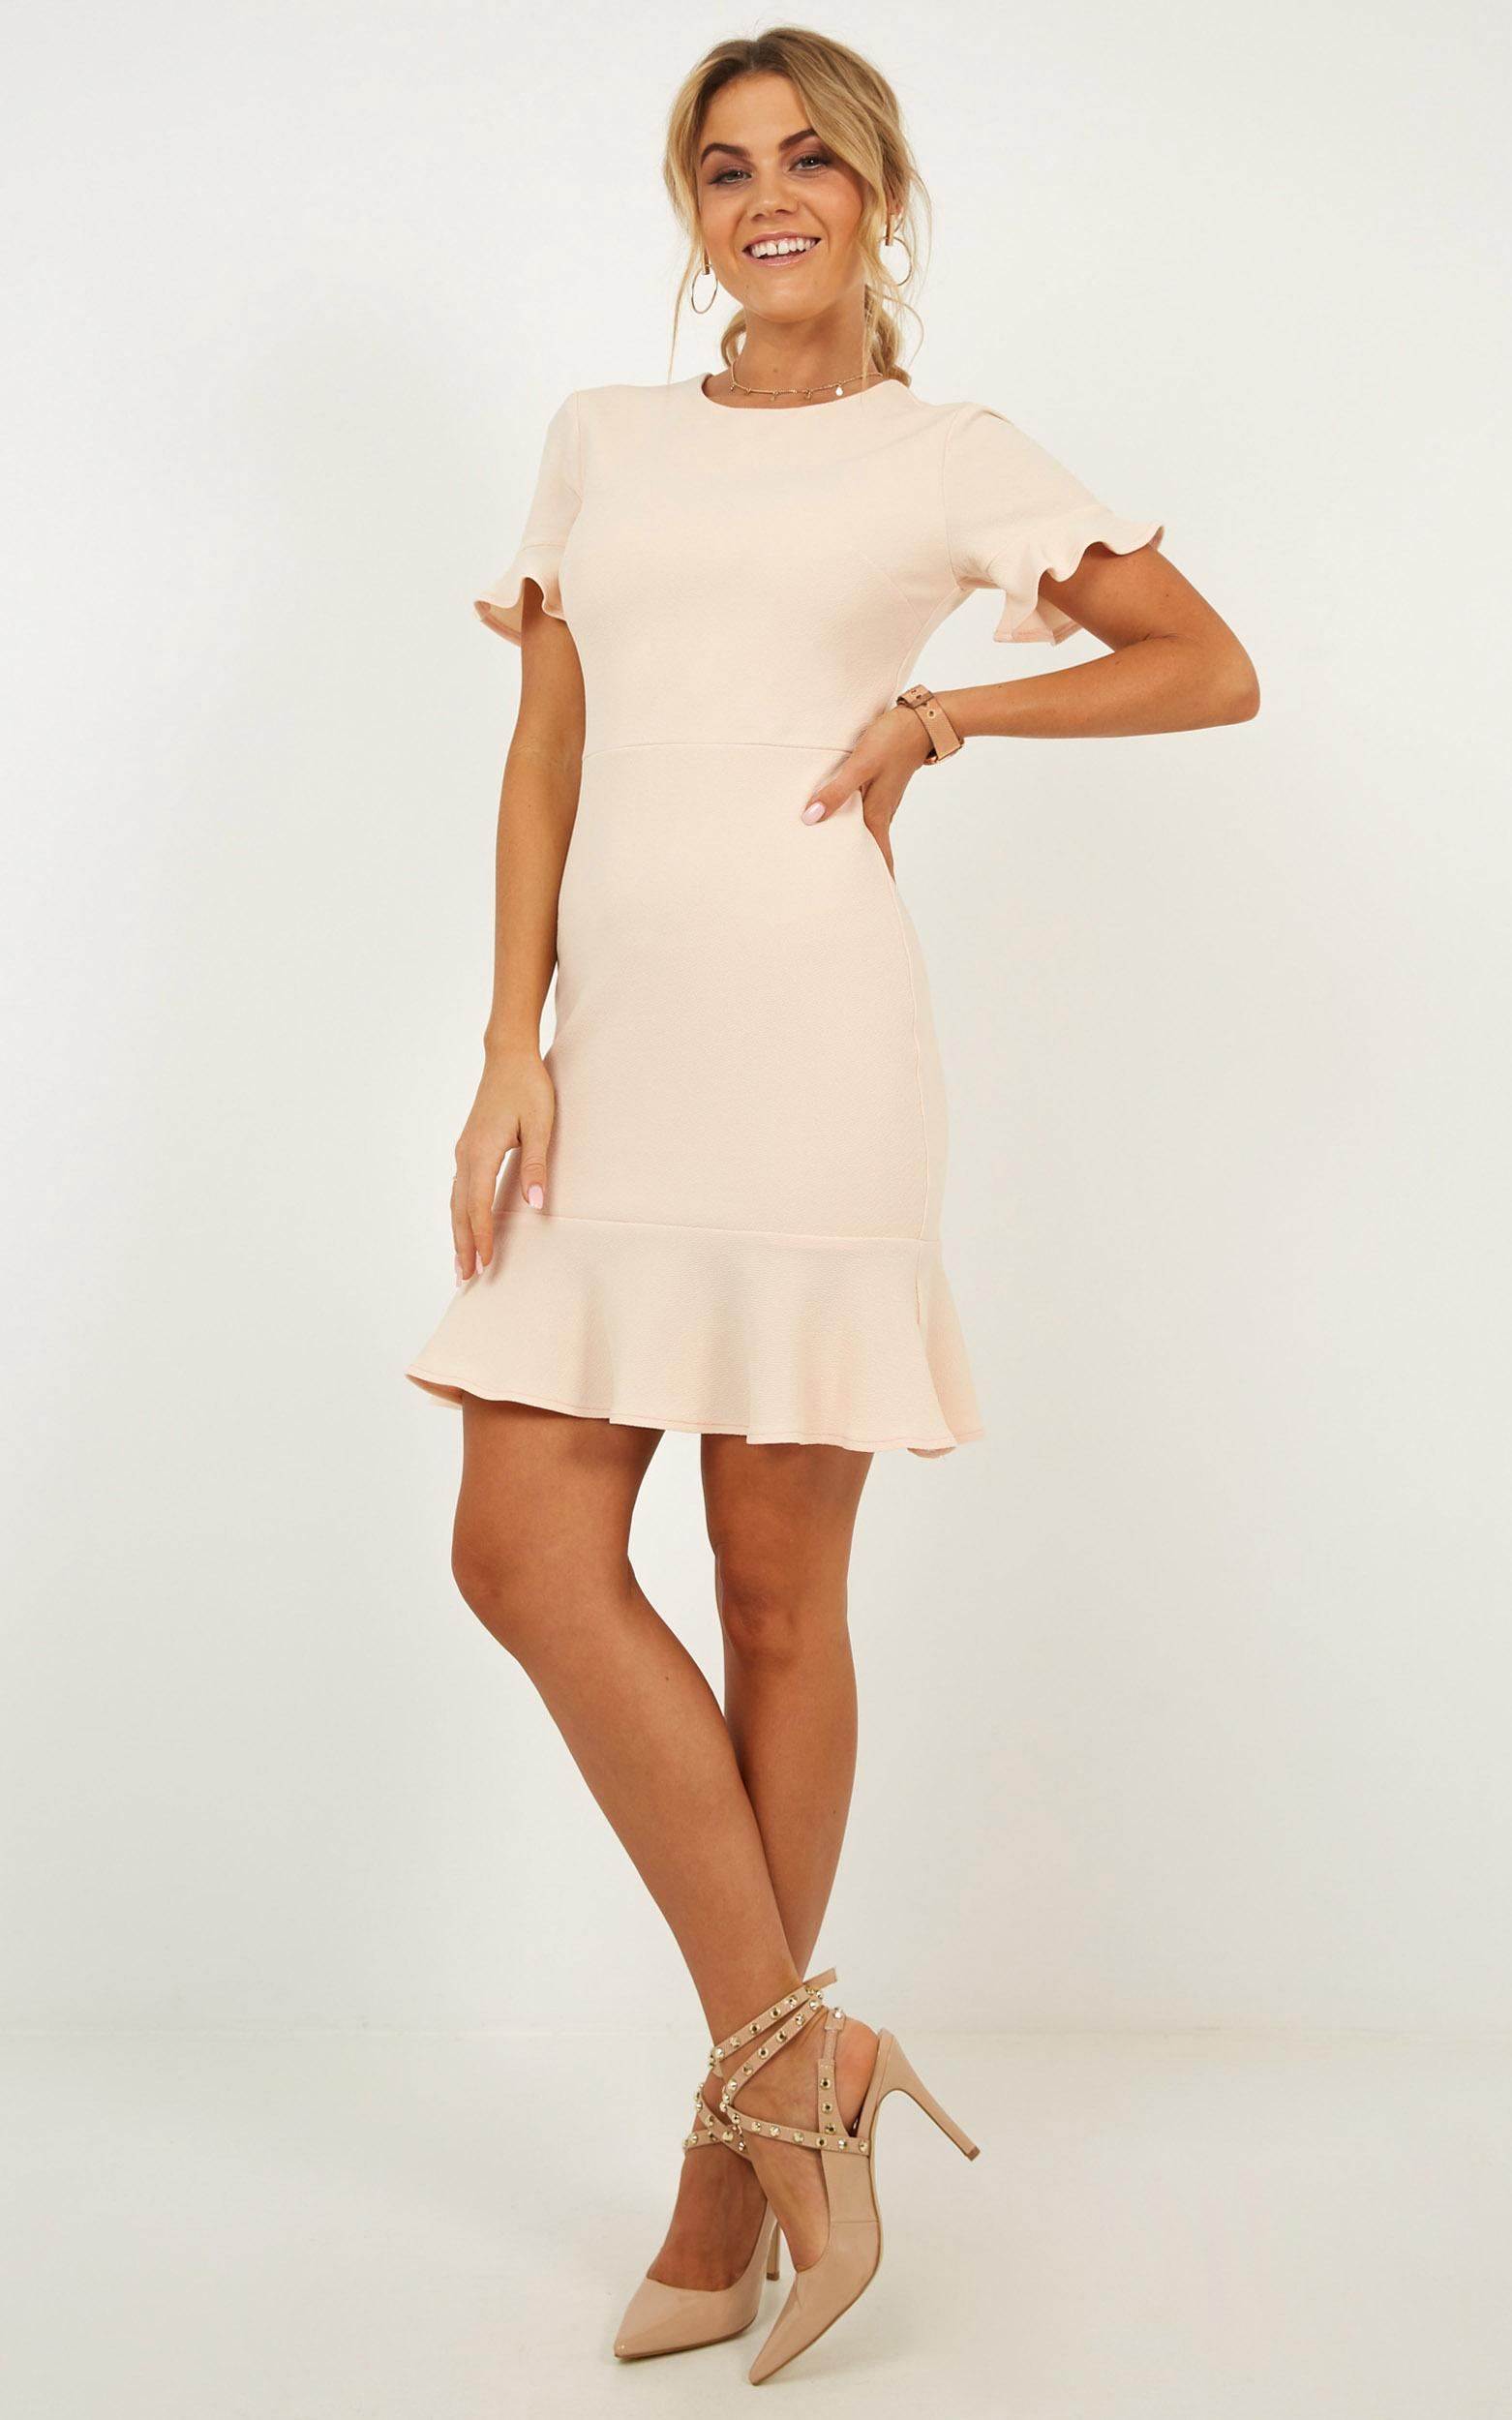 Authority Dress in nude - 20 (XXXXL), Beige, hi-res image number null